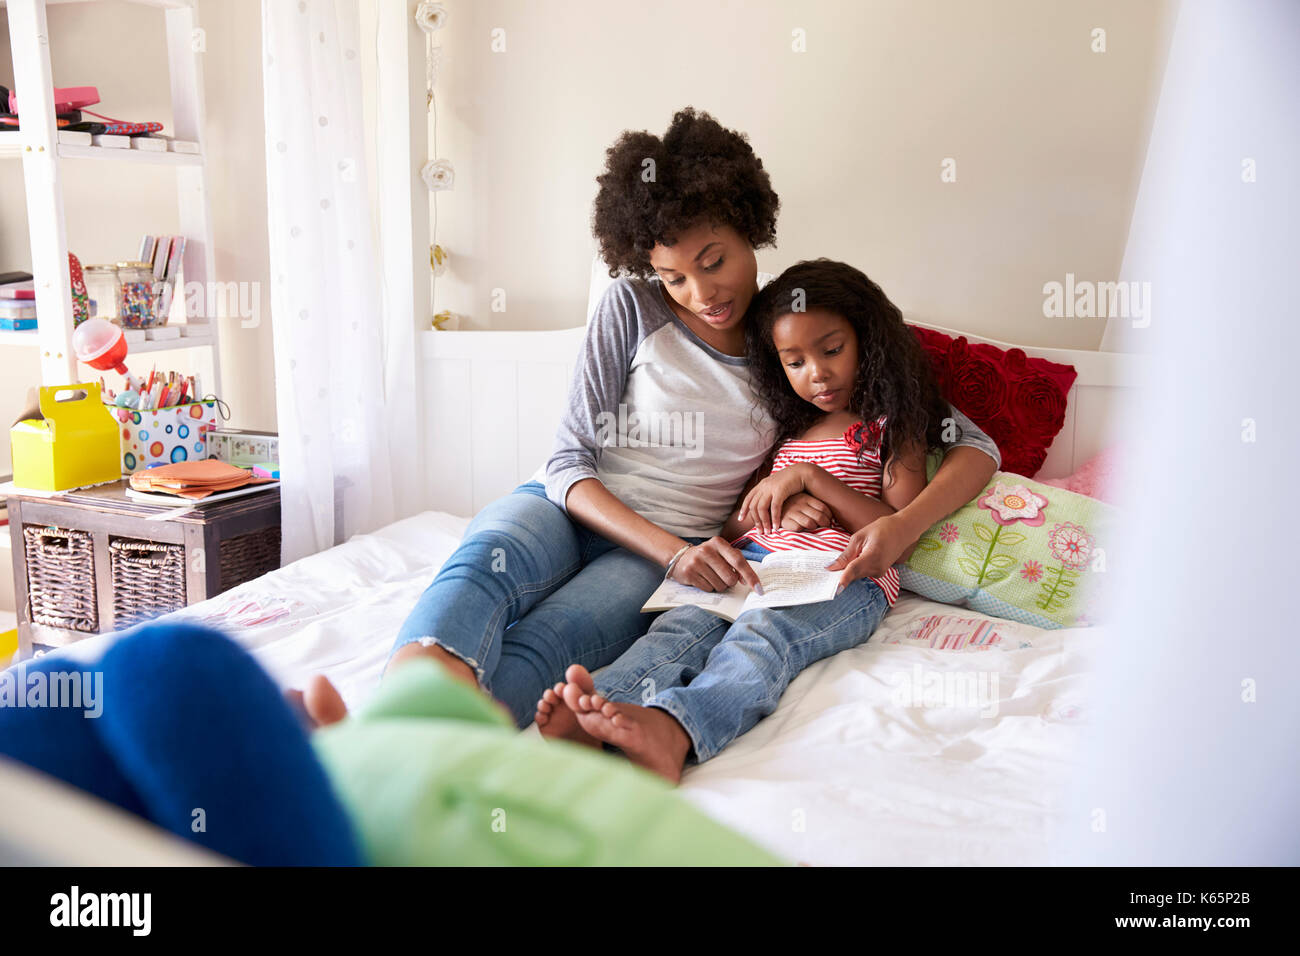 Mother And Daughter Siting On Bed Reading Book Together - Stock Image